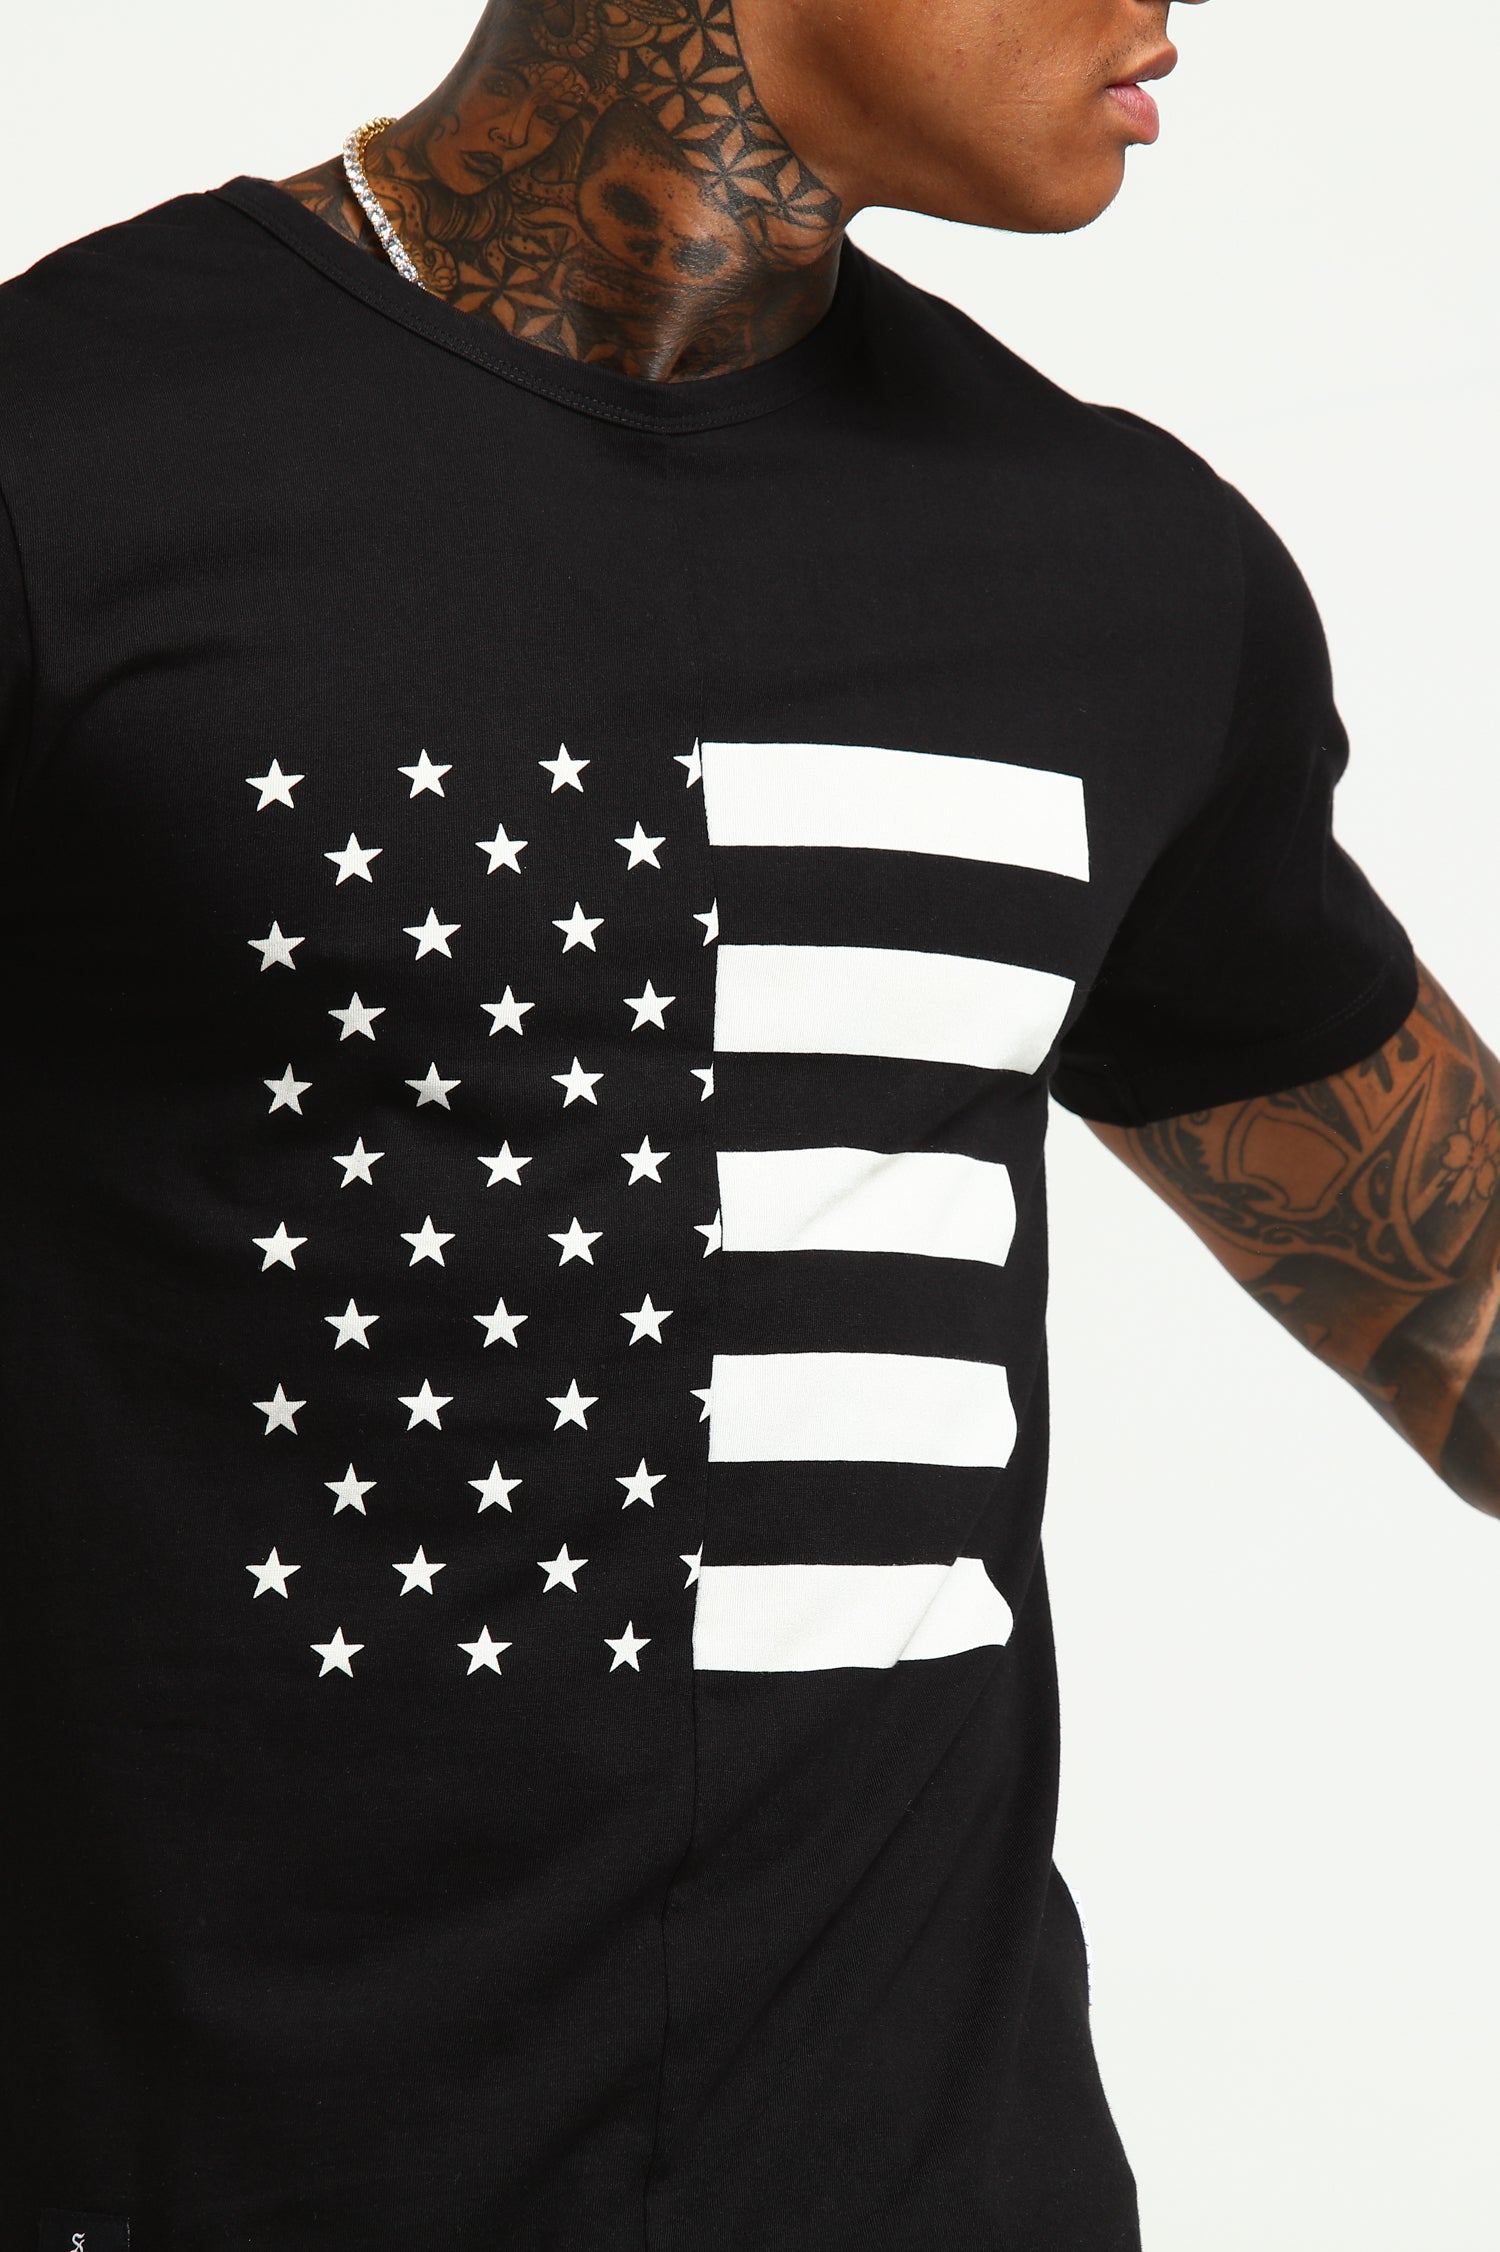 DEMOCRACY SS TEE - Black